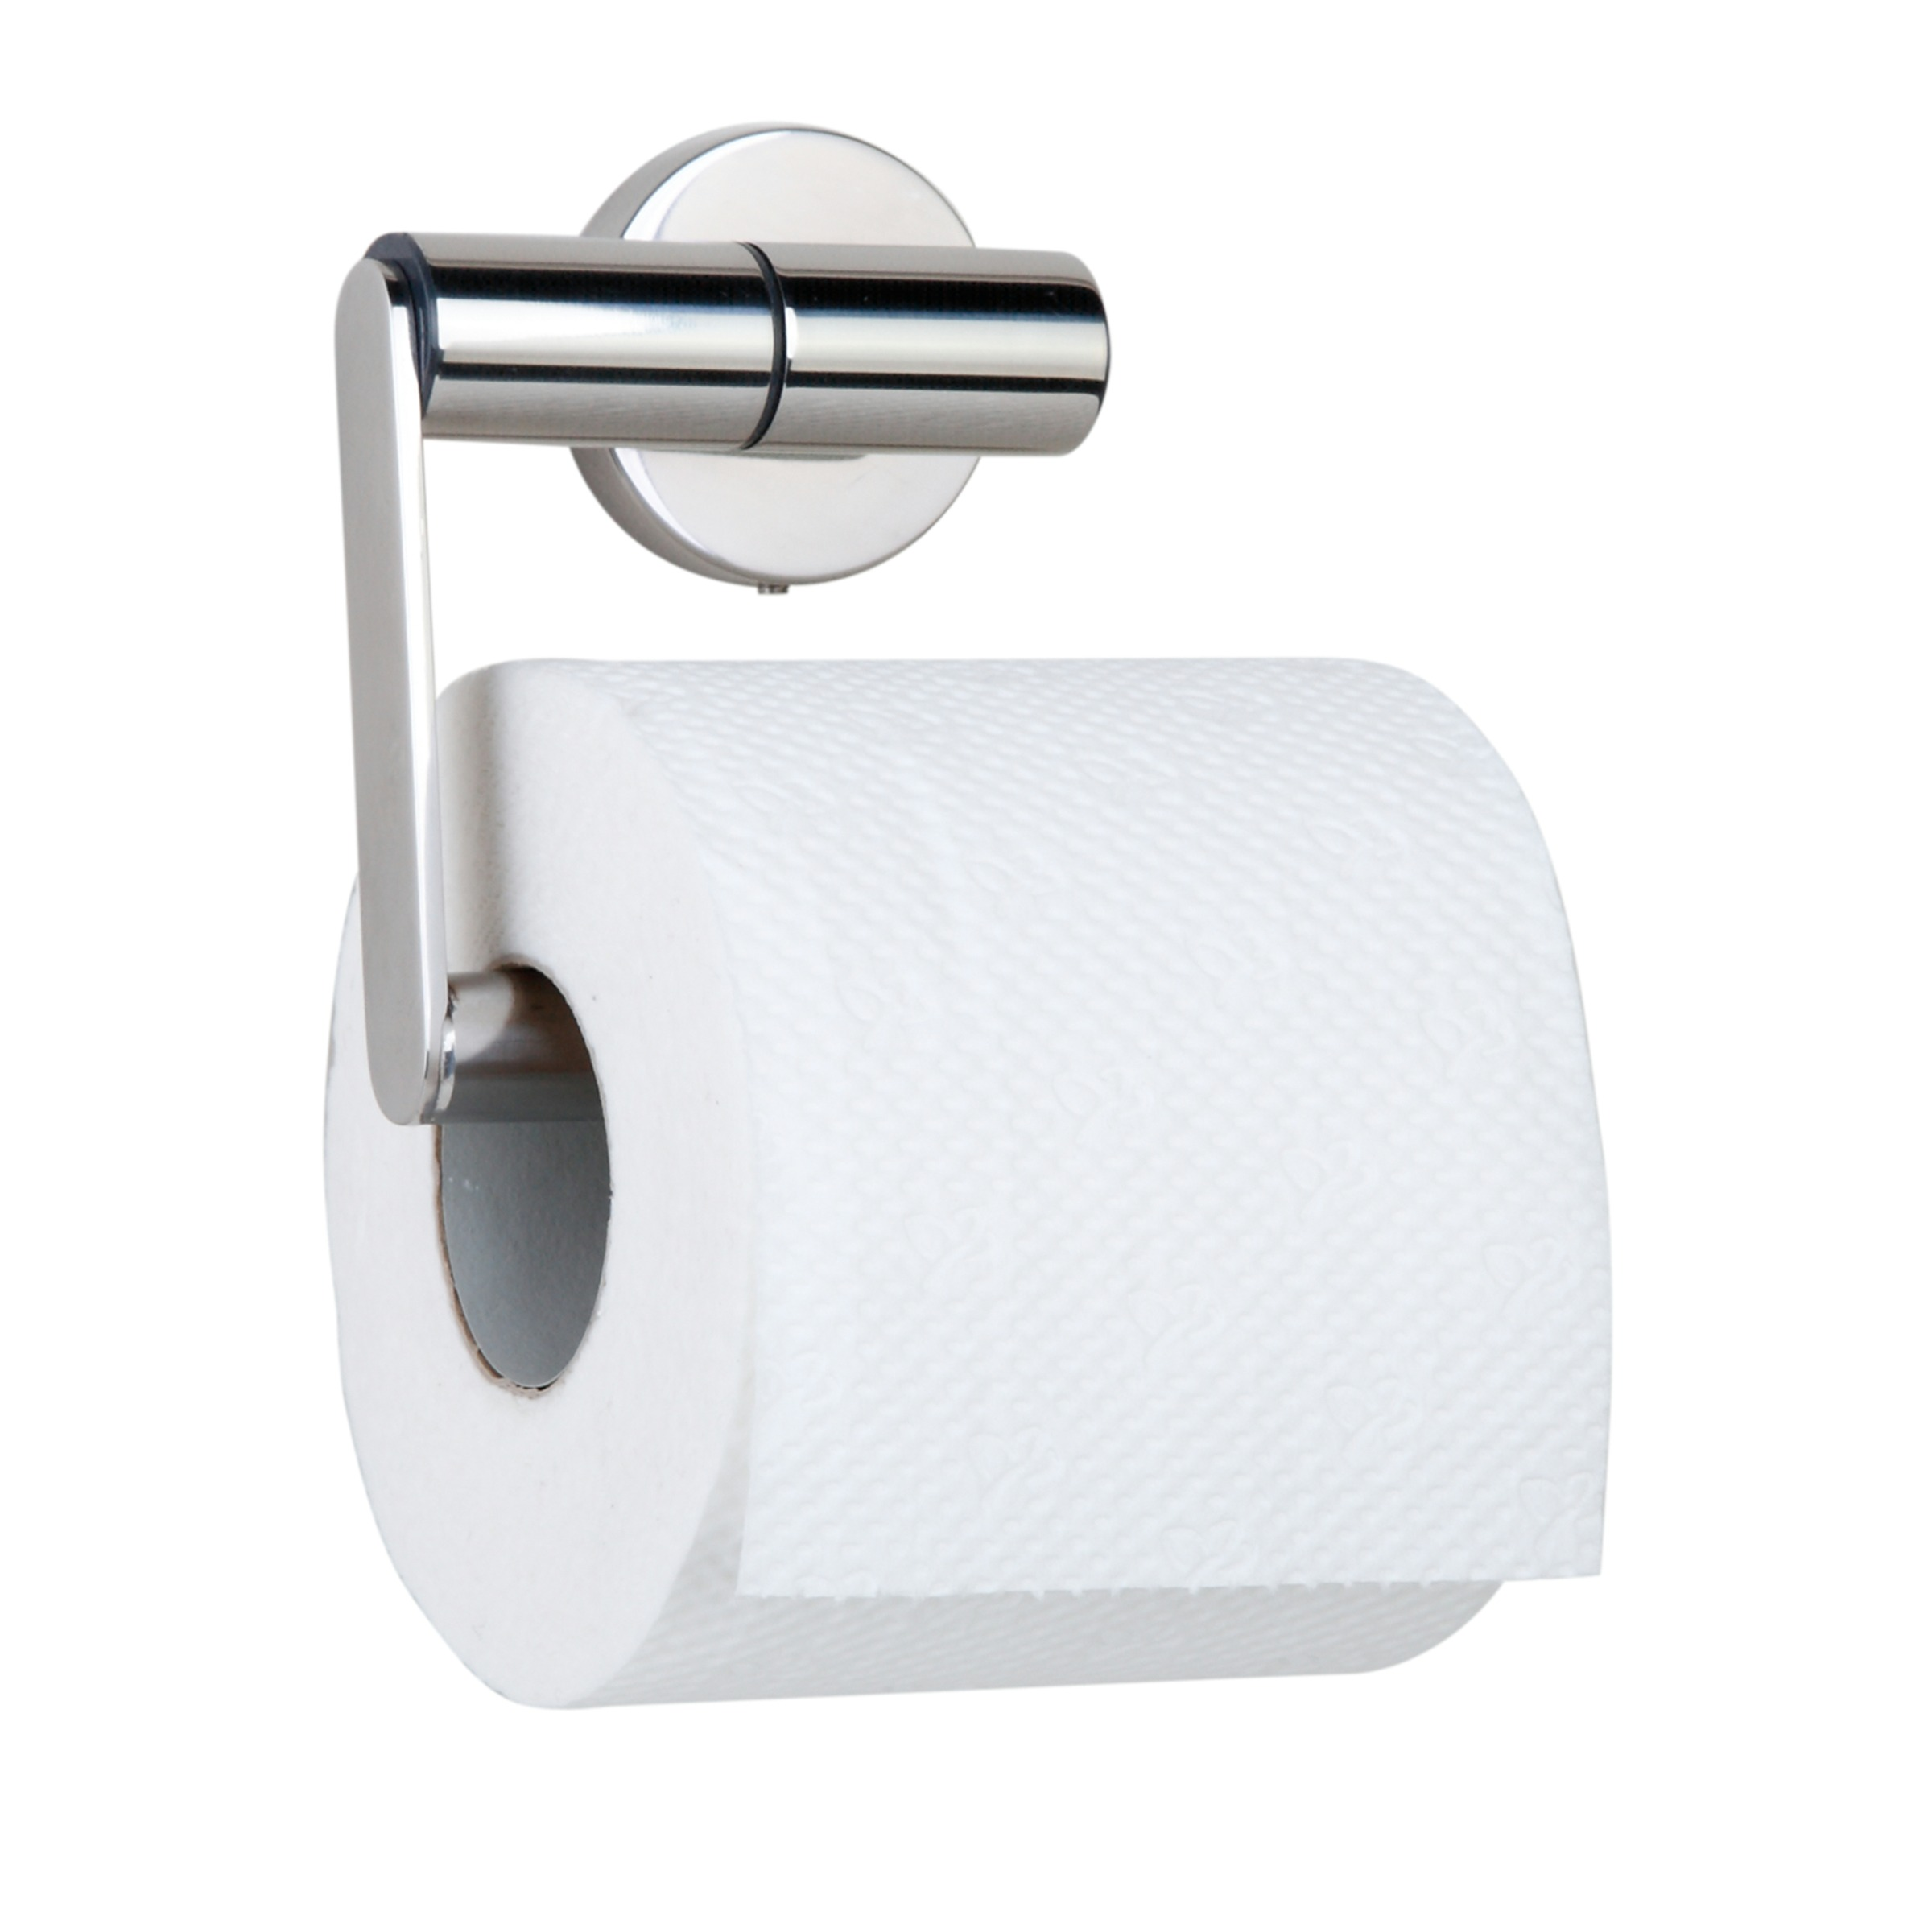 Tiger boston toiletrolhouder rvs glans